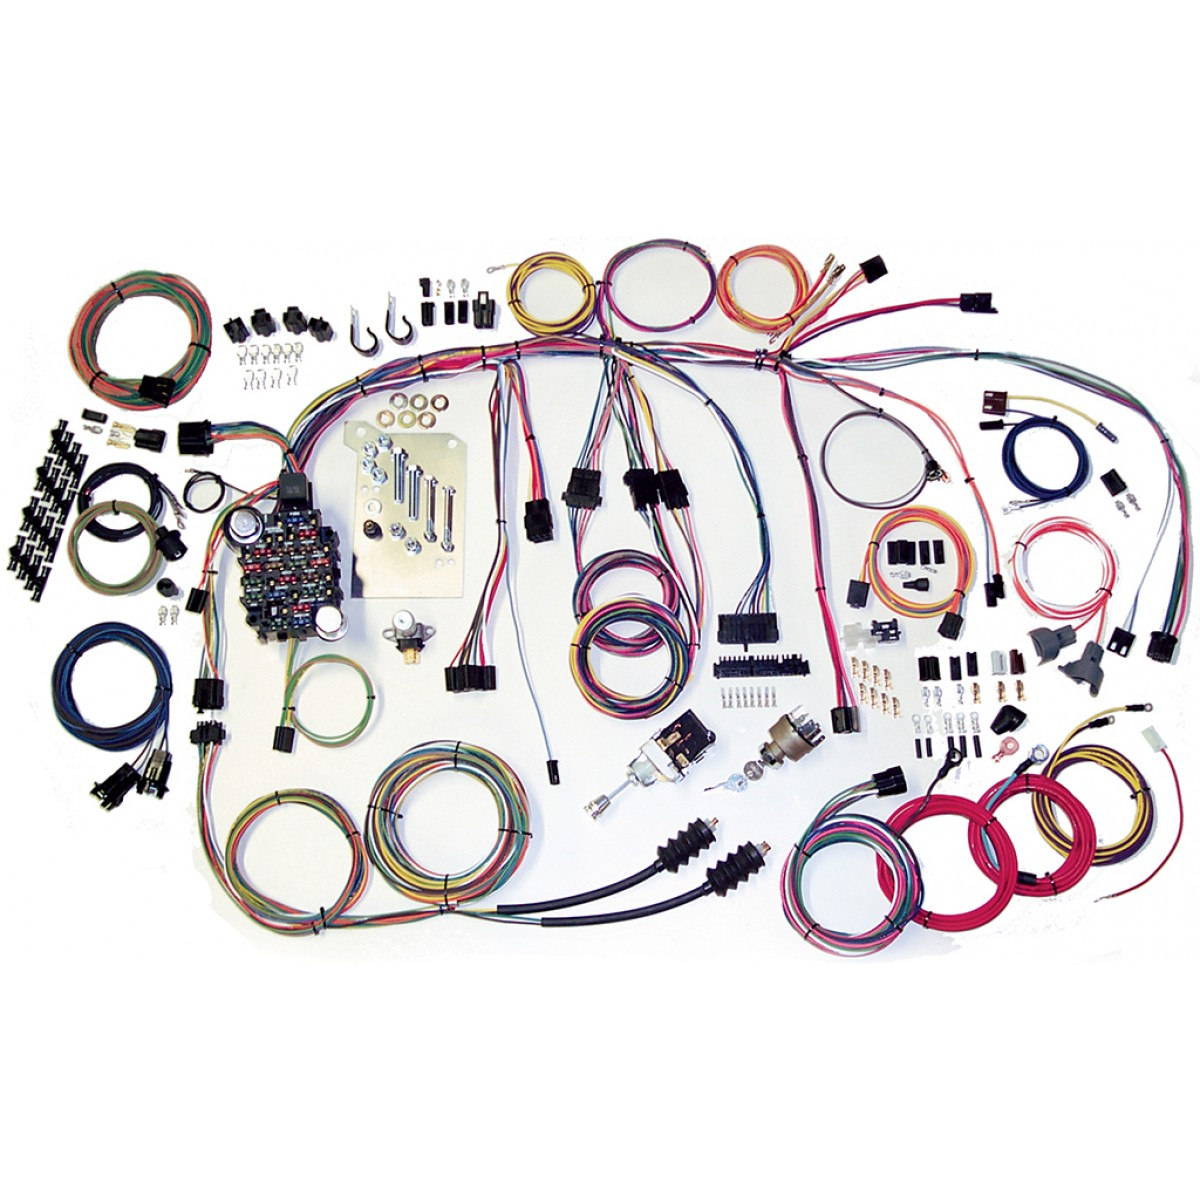 60 66 chevy truck wiring harness kit 1960 1966 chevy truck part 500560 chevy c10 c20 wiring harness chevy c10 wiring harness complete wiring harness kit 1960 1966 1964 c10 wiring harness at crackthecode.co